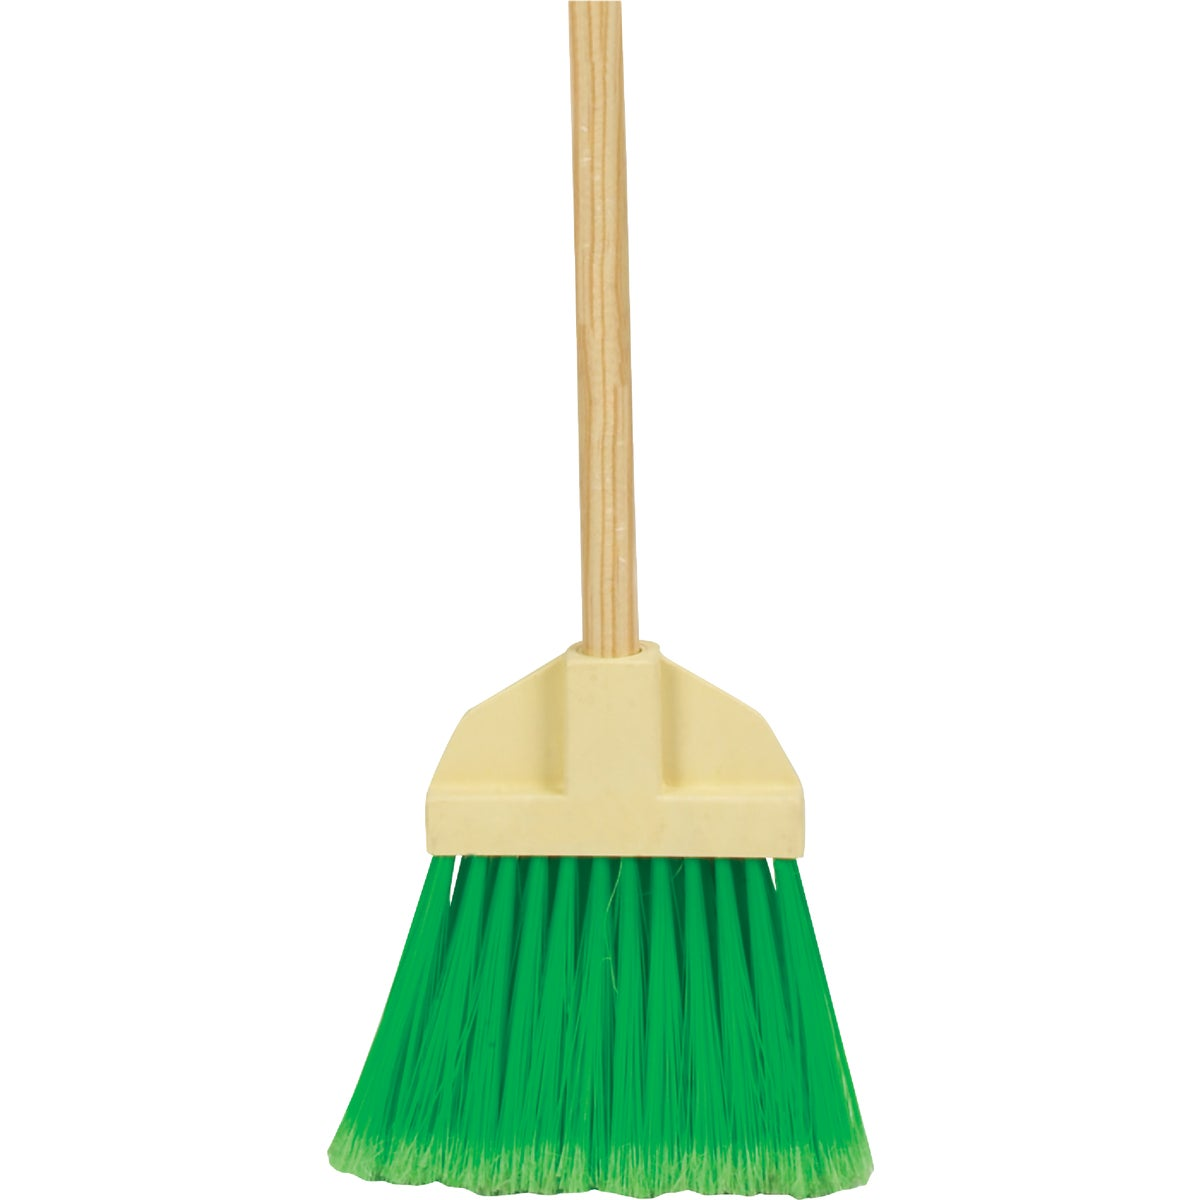 LOBBY BROOM - 5407-12 by Bruske Products